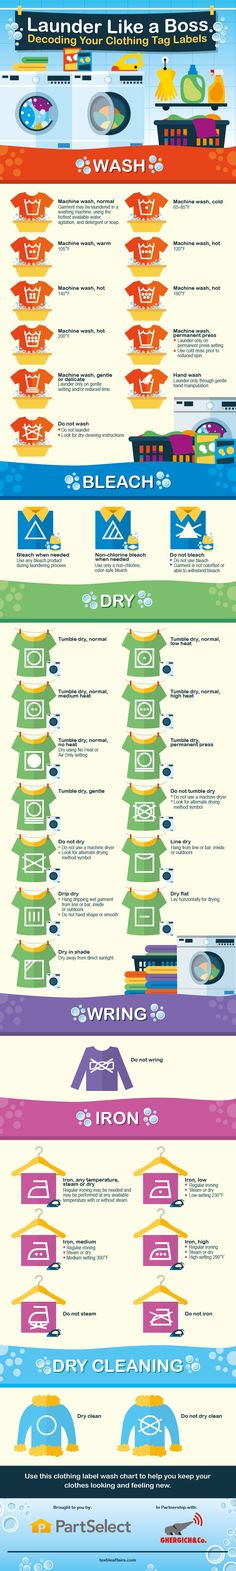 Learn how to read the laundry tags on your clothing once and for all!